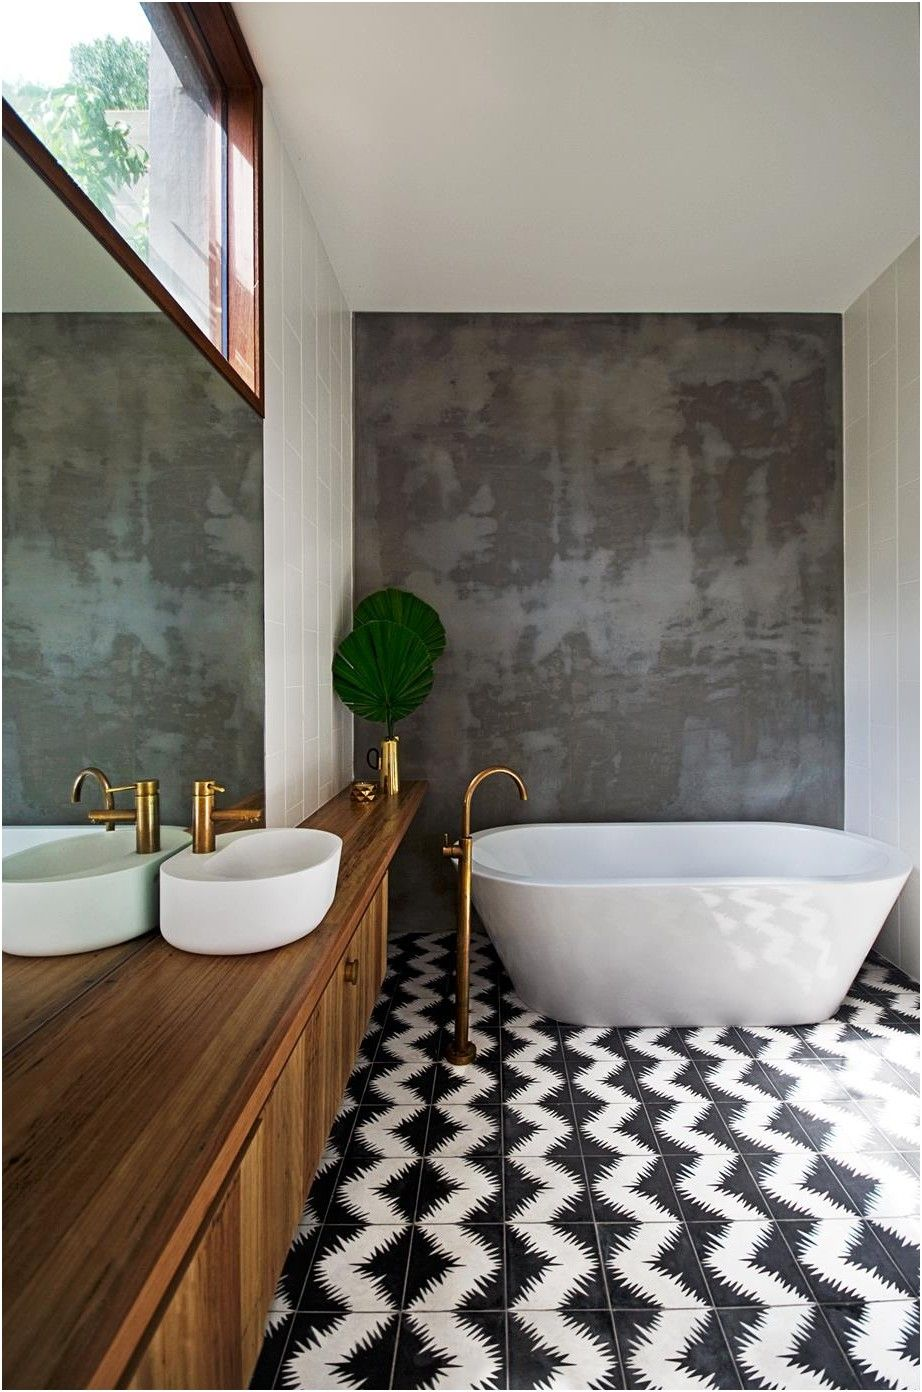 Br Tapware In This Earthy Bathroom By Auhaus Architects From Designs